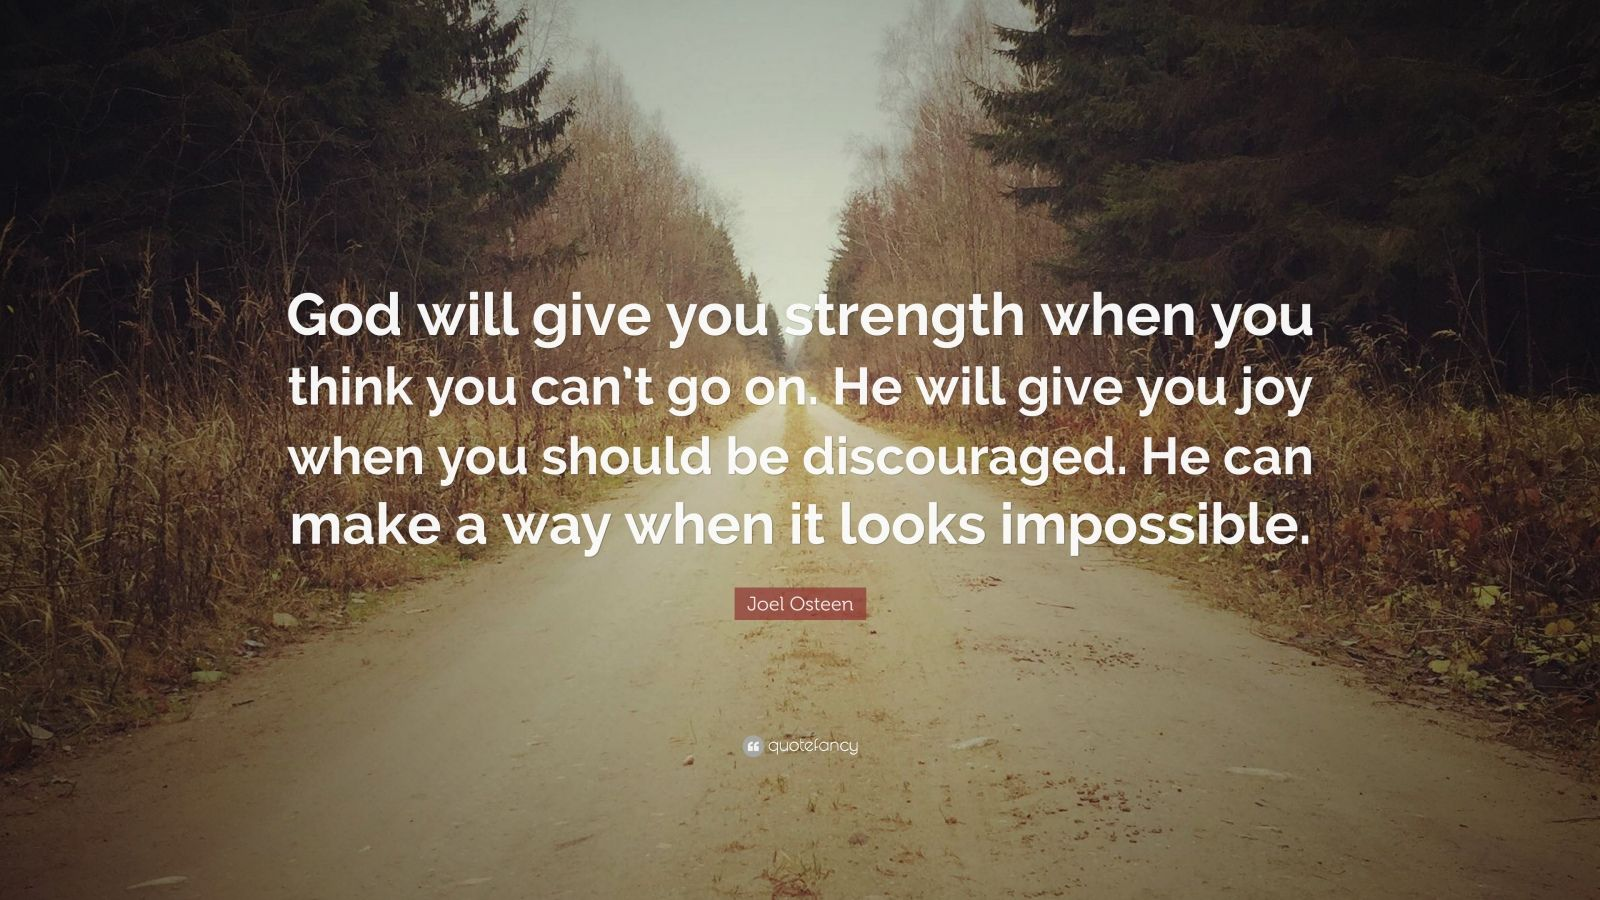 Rest In Peace Quotes Wallpaper Joel Osteen Quote God Will Give You Strength When You